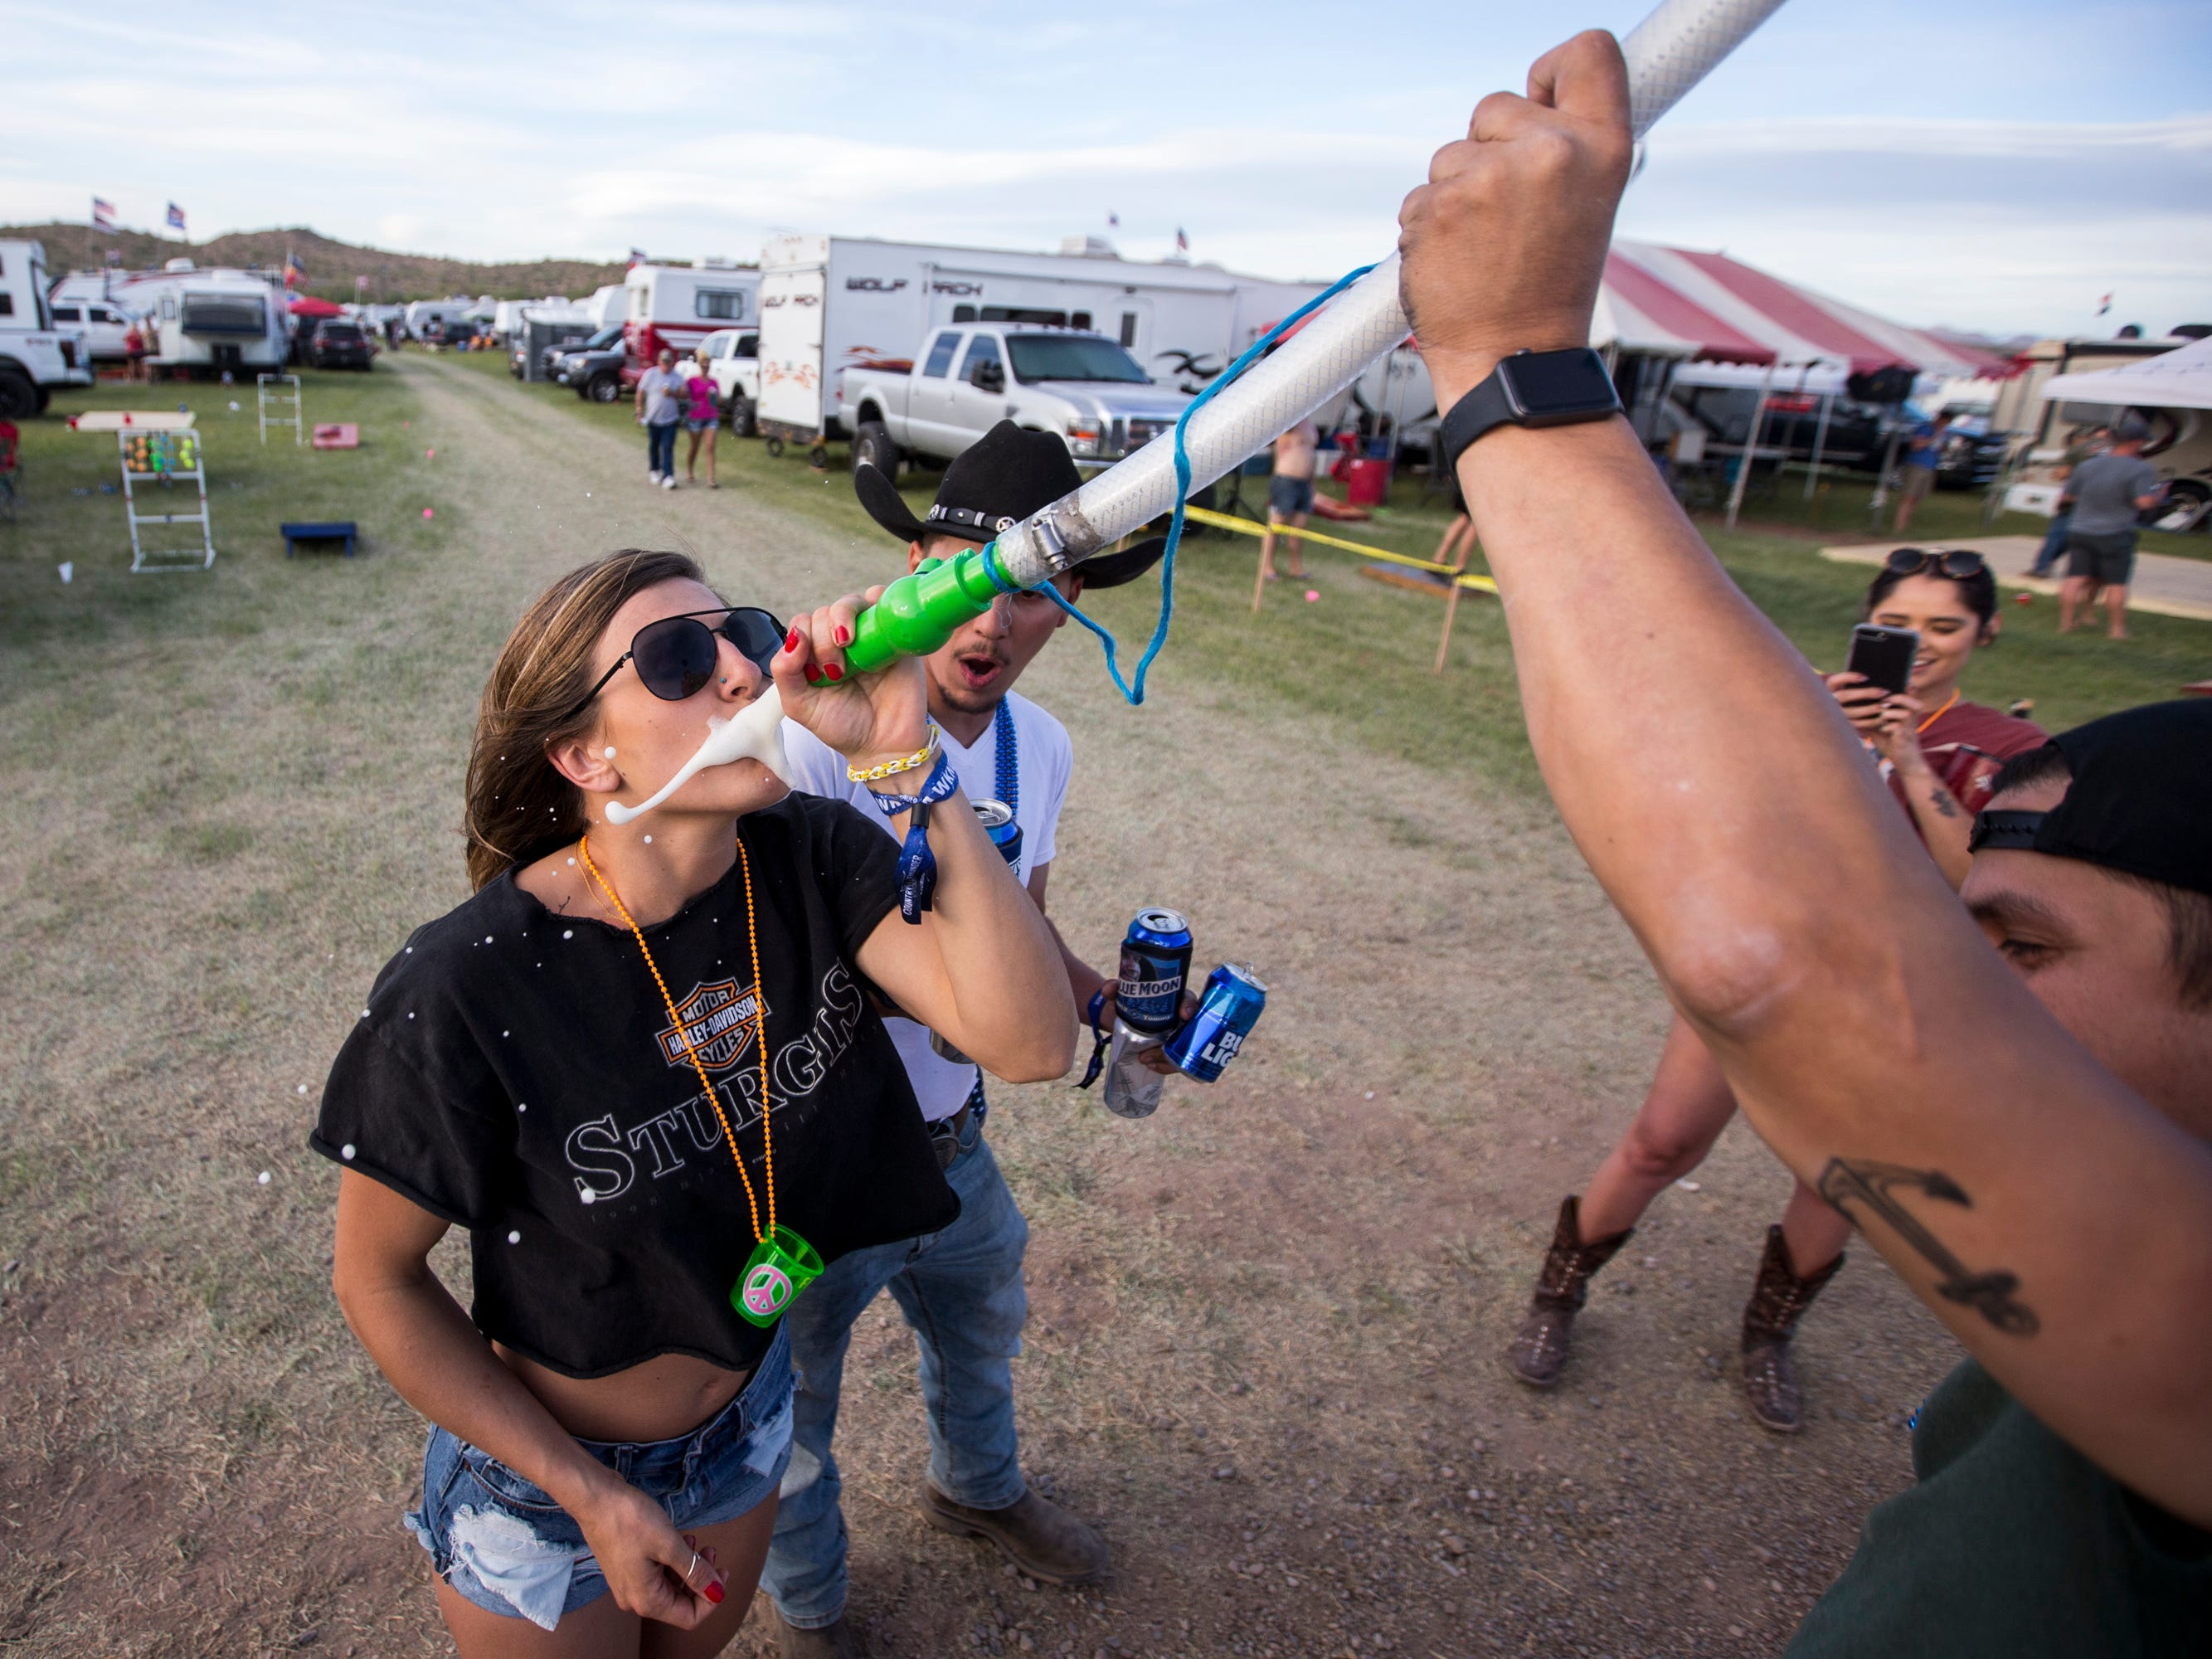 Felicia Farra drinks from a beer bong at the Crazy Coyote campsite during Day 1 of Country Thunder Arizona in Florence, Ariz., on Apr. 11, 2019.